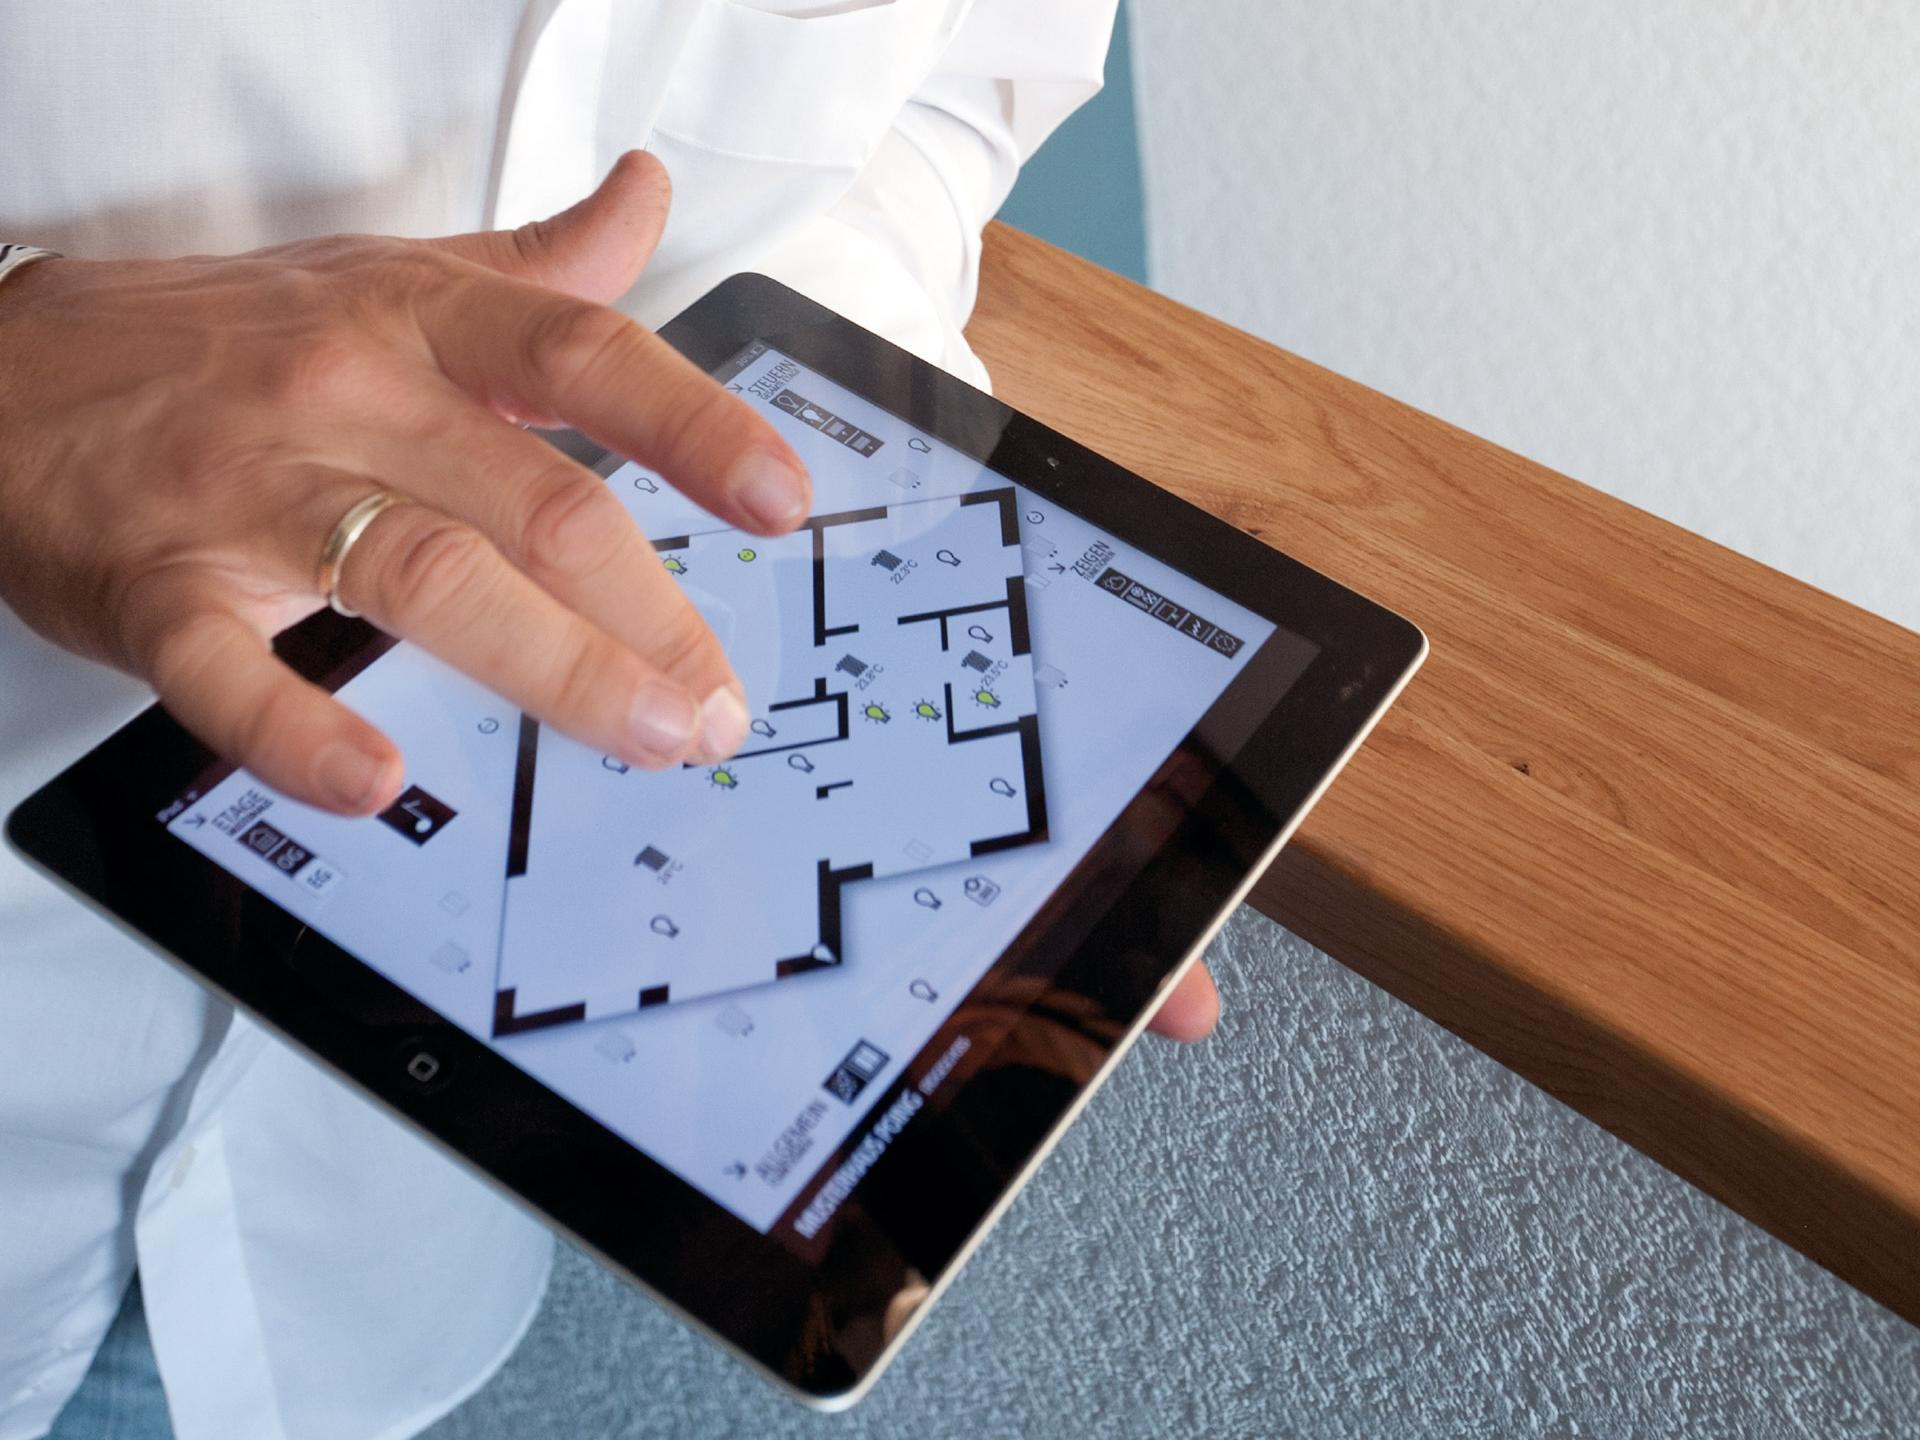 controllare il sistema Smart Home con il tablet